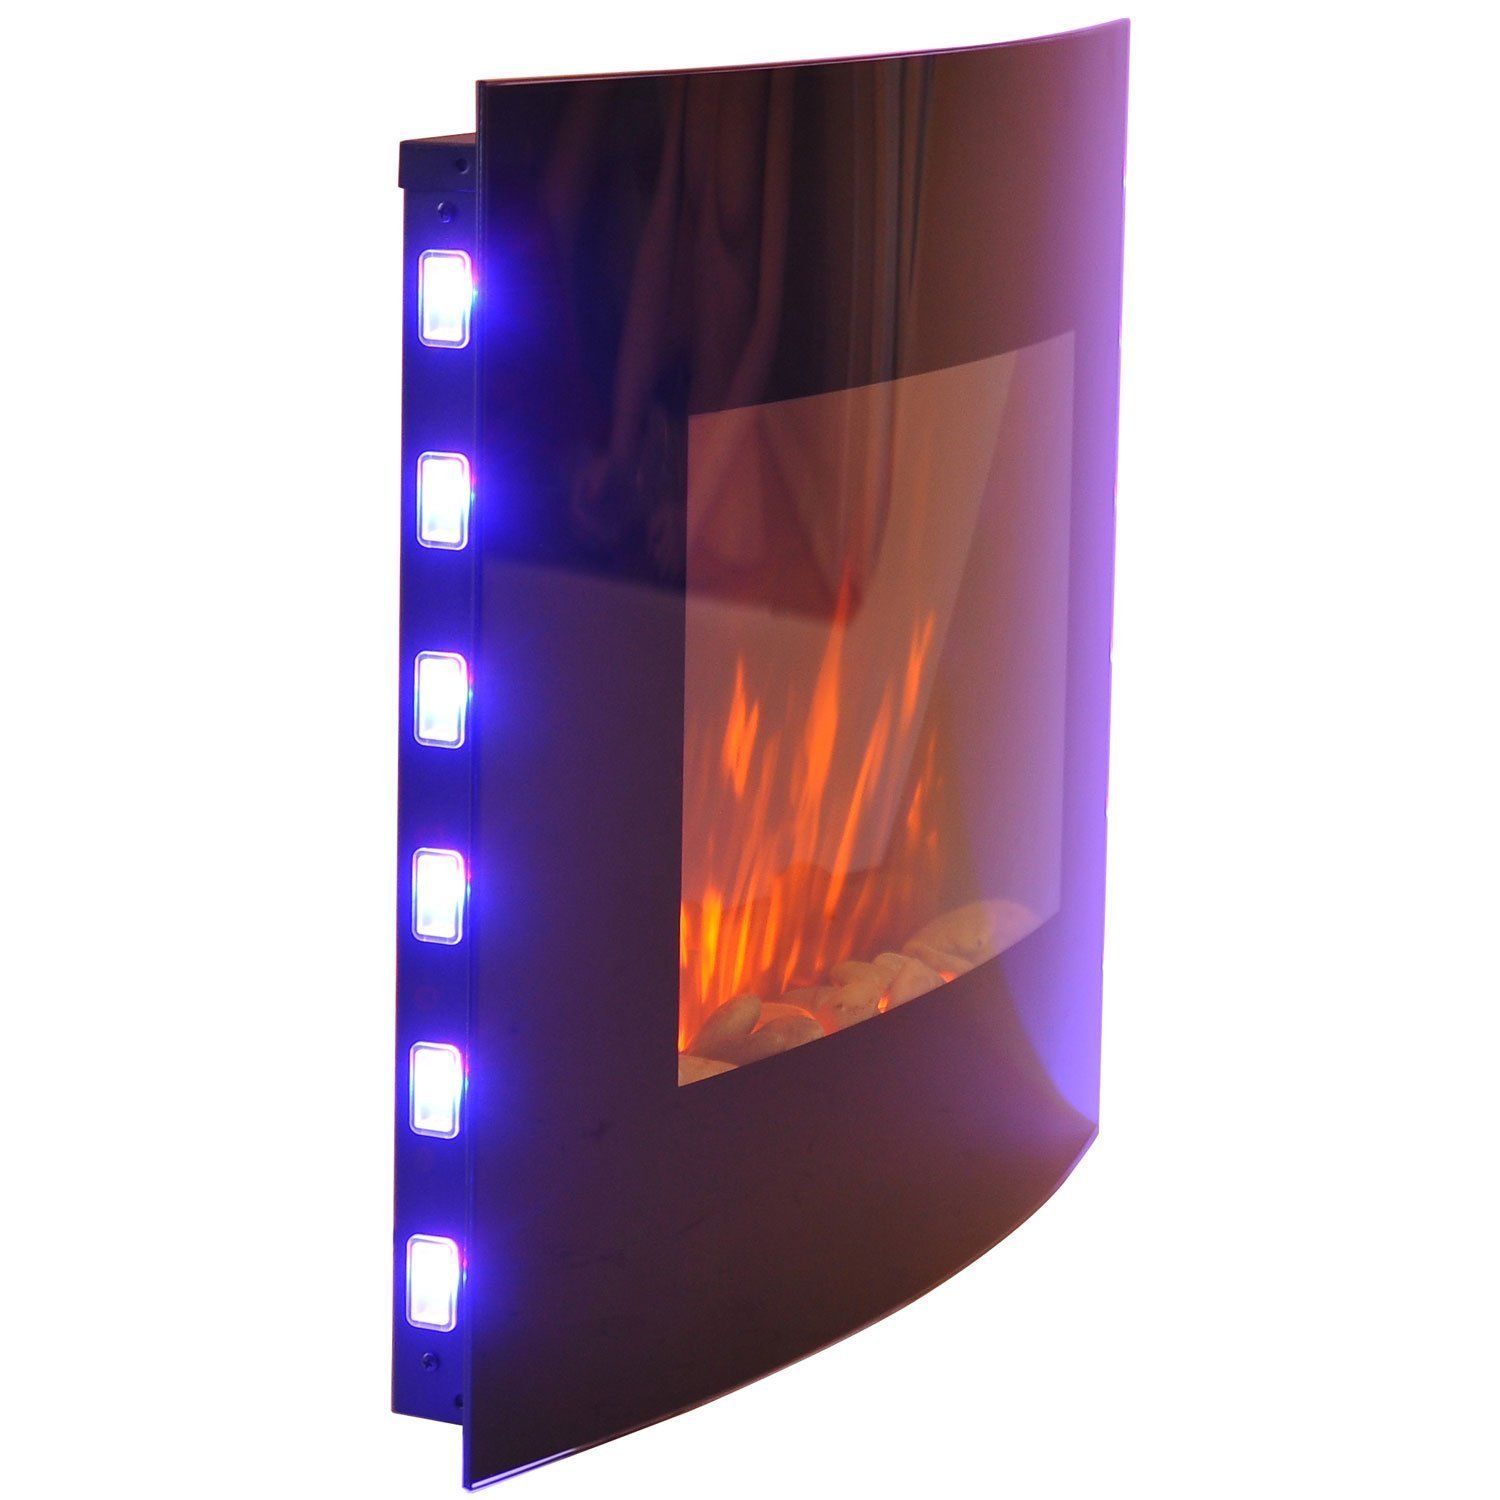 homcom large led curved glass electric wall mounted fire place